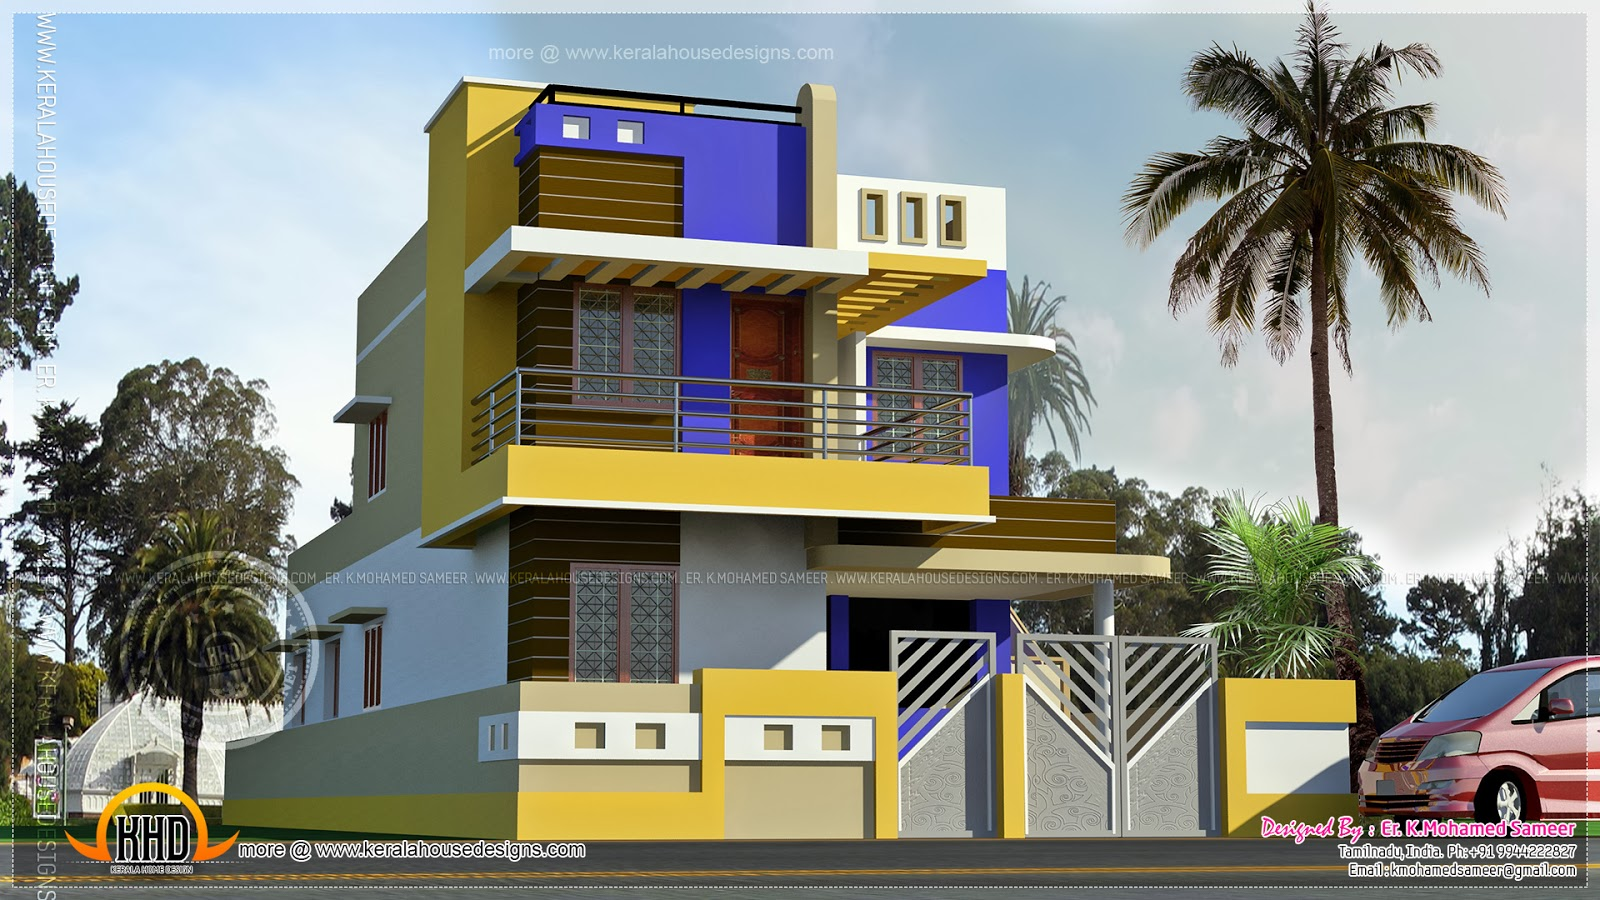 Modern tamilnadu house kerala home design and floor plans for Home models in tamilnadu pictures